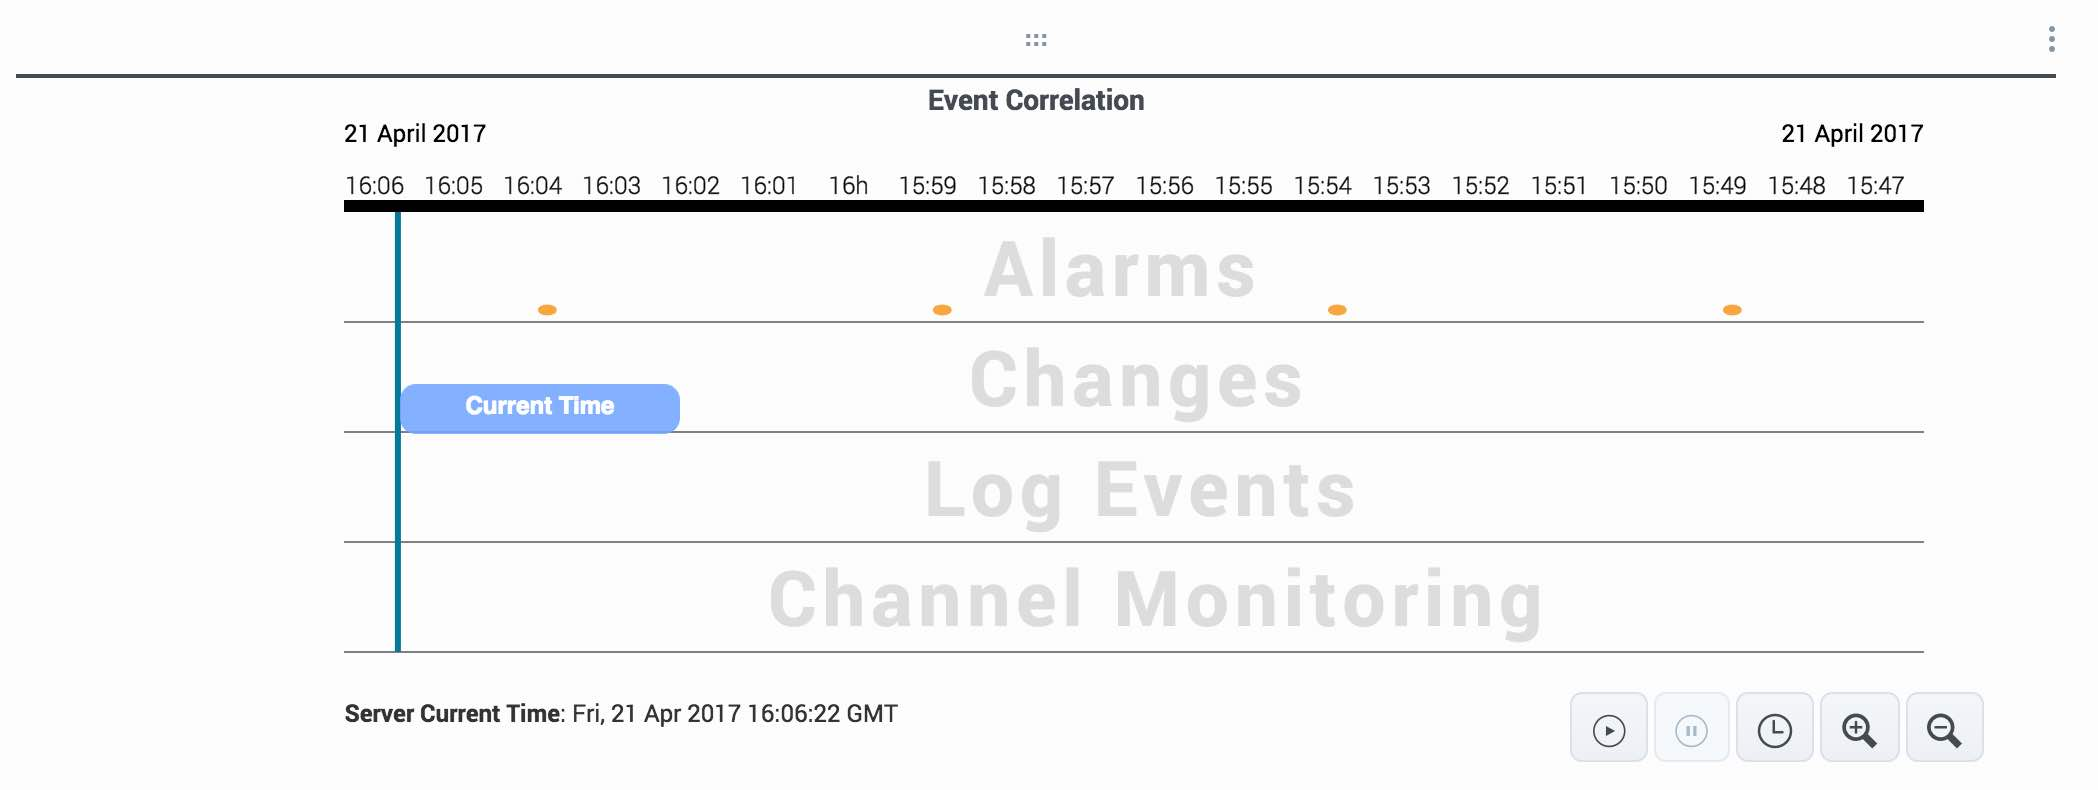 WB Event Correlation Widget 04-21-2017.jpg